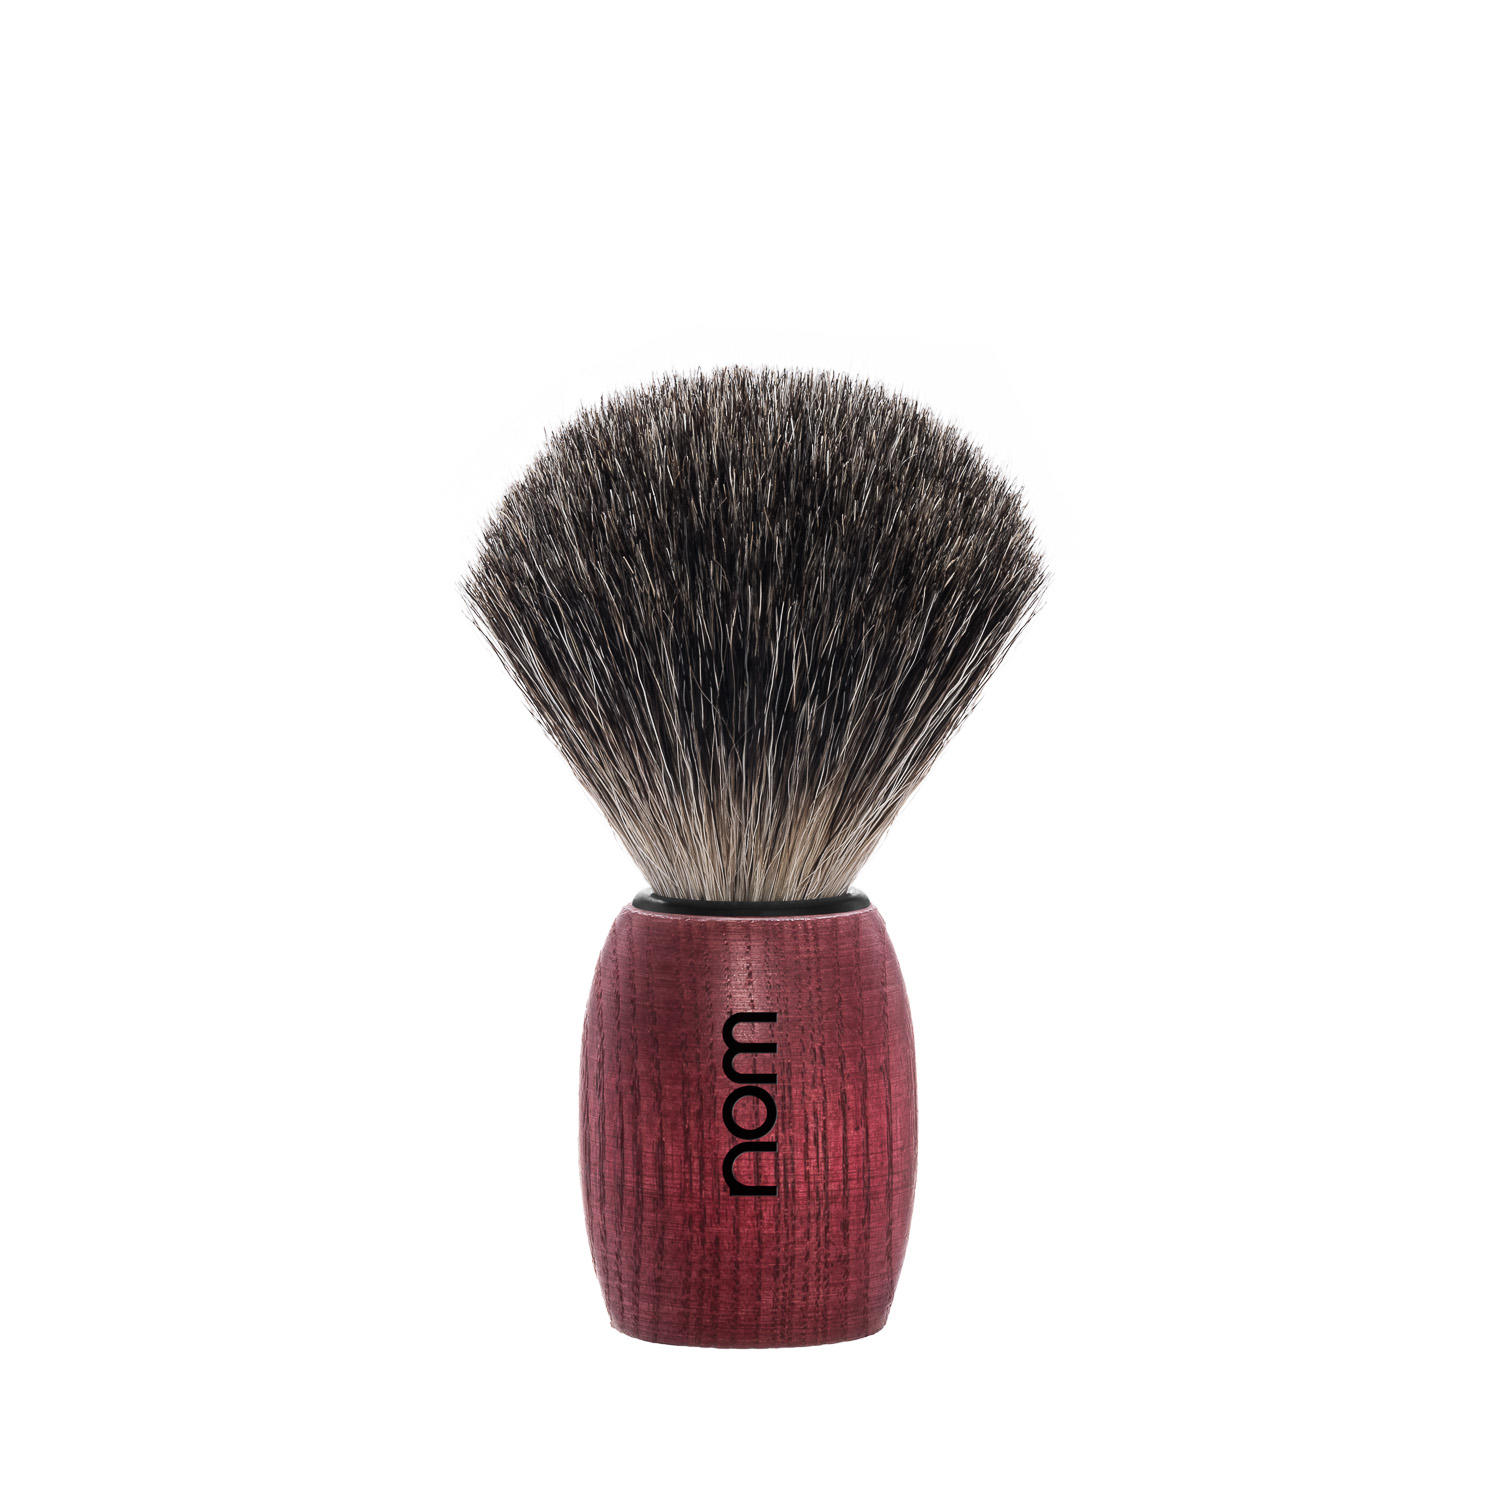 OLE81BA nom OLE, Blushed Ash, Pure Badger Shaving Brush